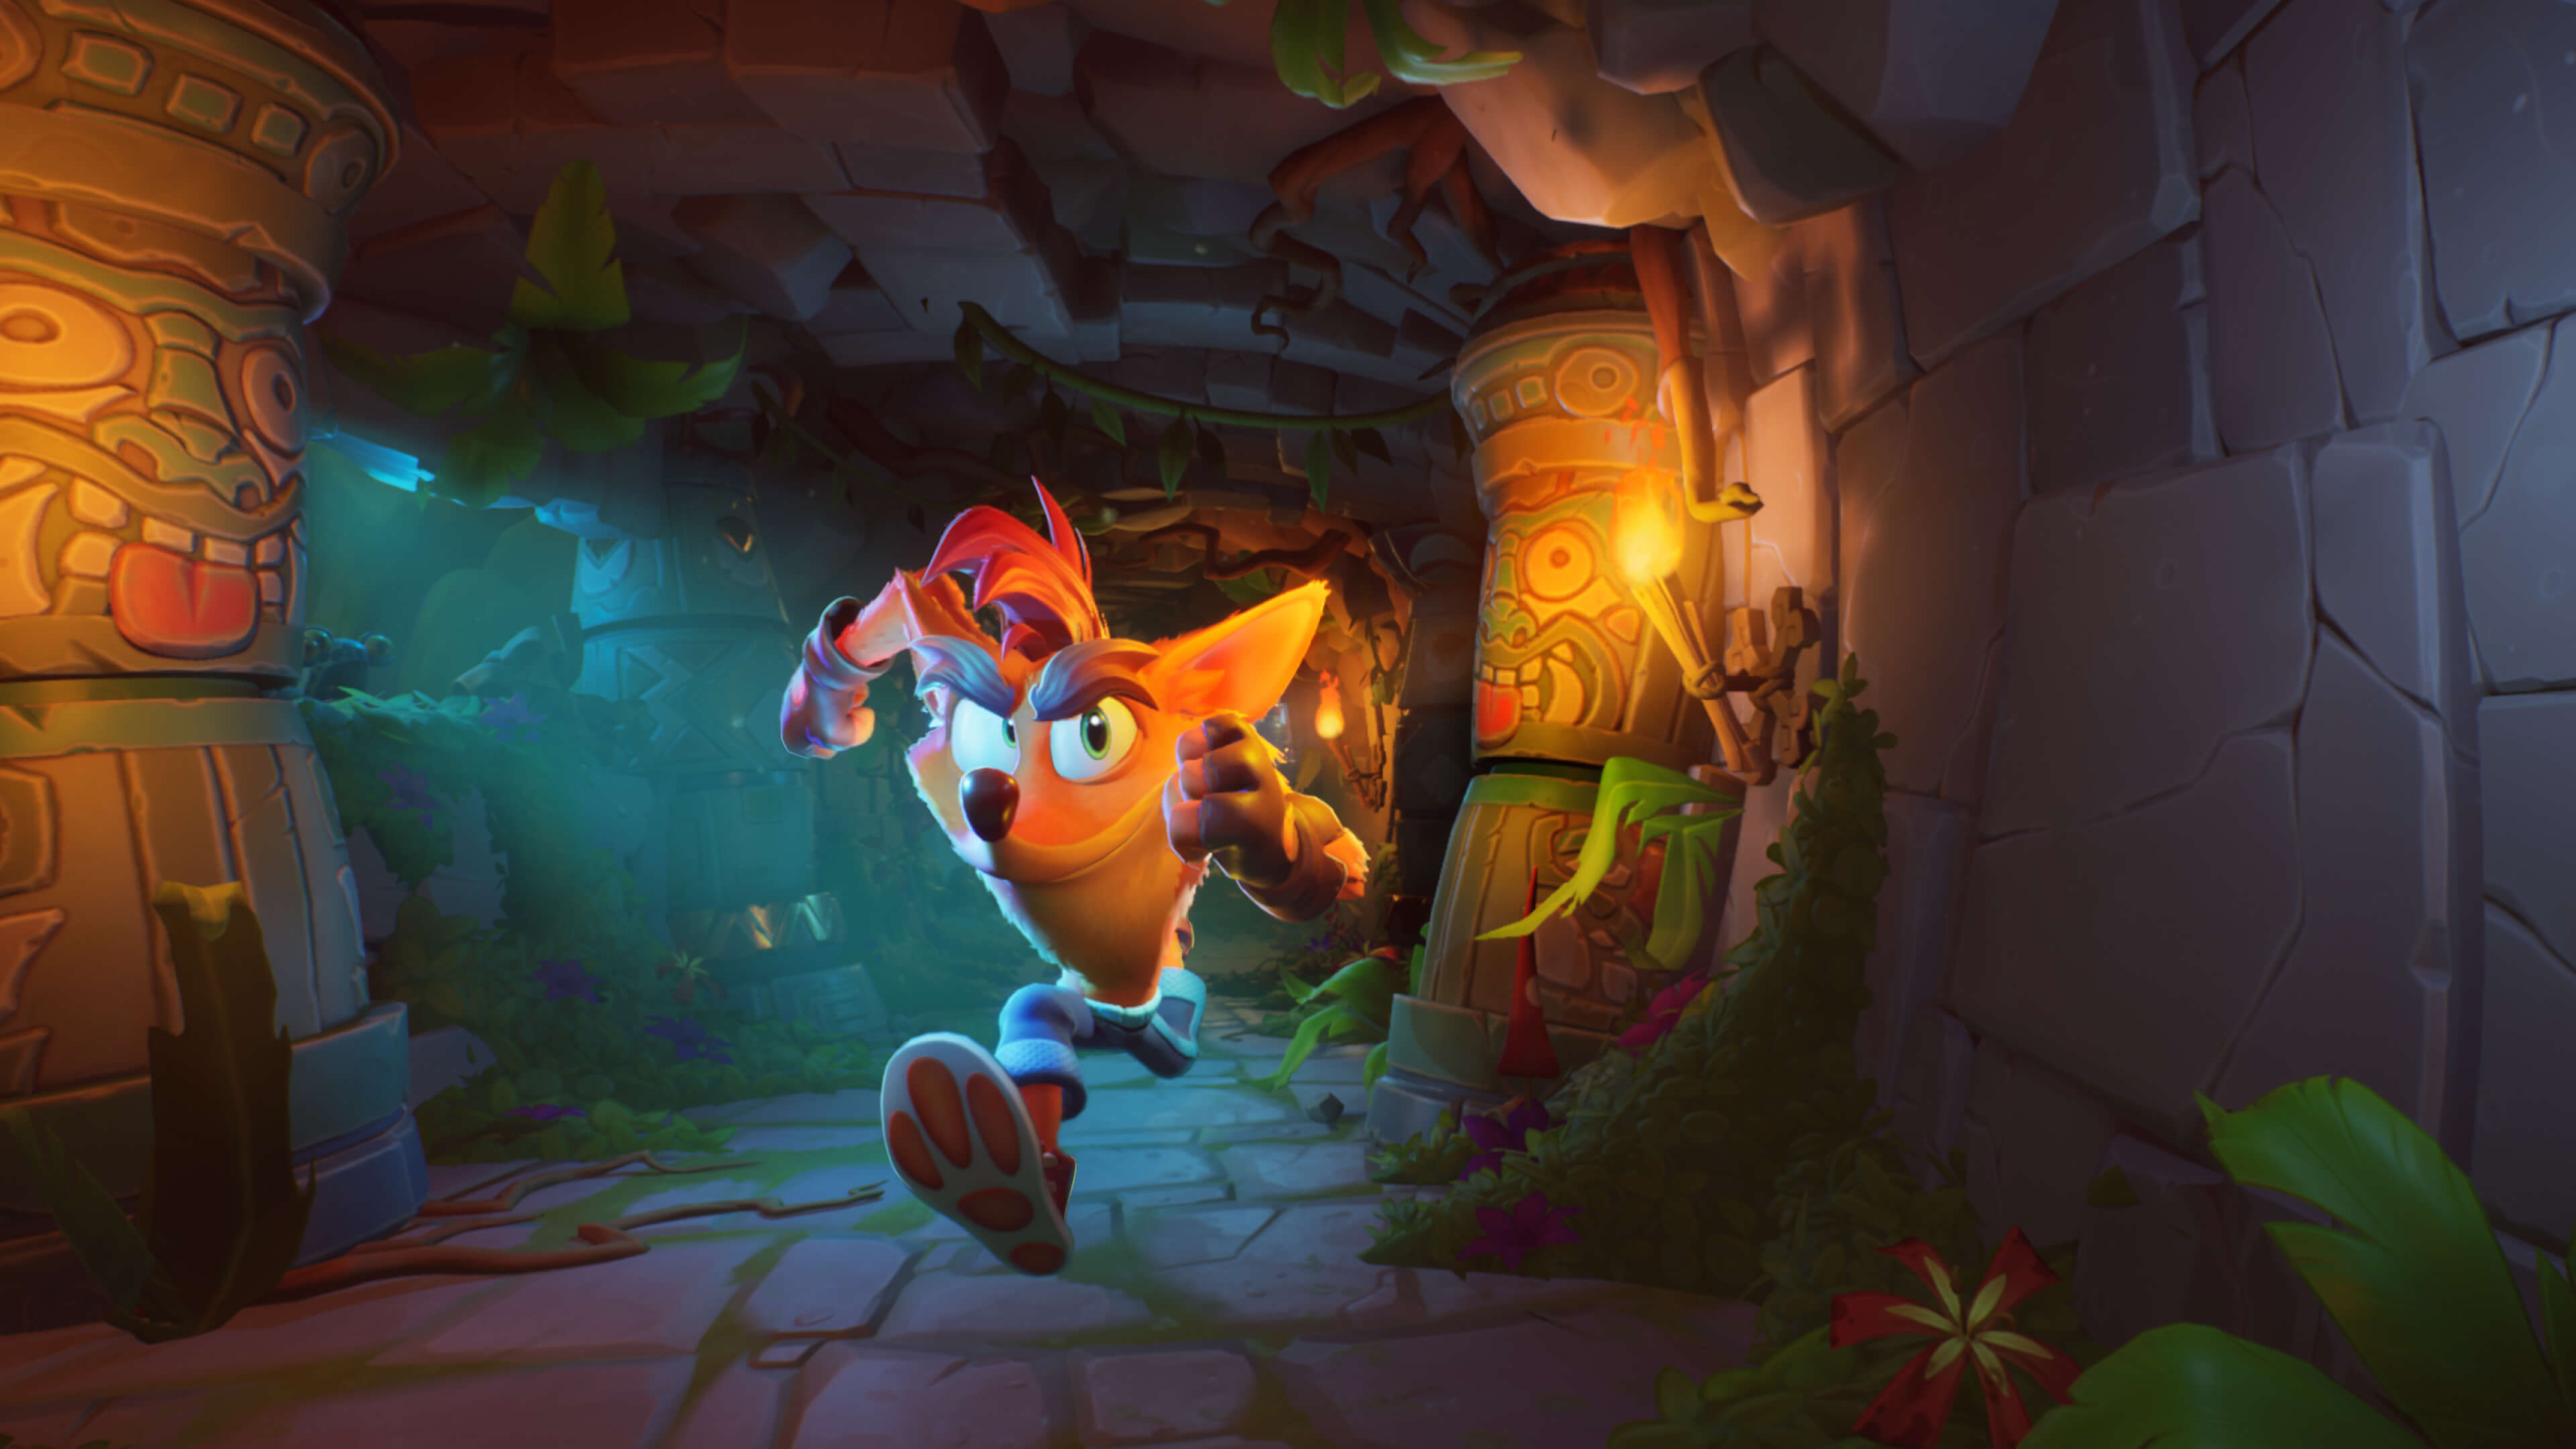 https://www.crashbandicoot.com/content/dam/atvi/Crash/crash-touchui/quantum/home/gallery/CB4_Screenshot_Launch_1_Crash.jpg